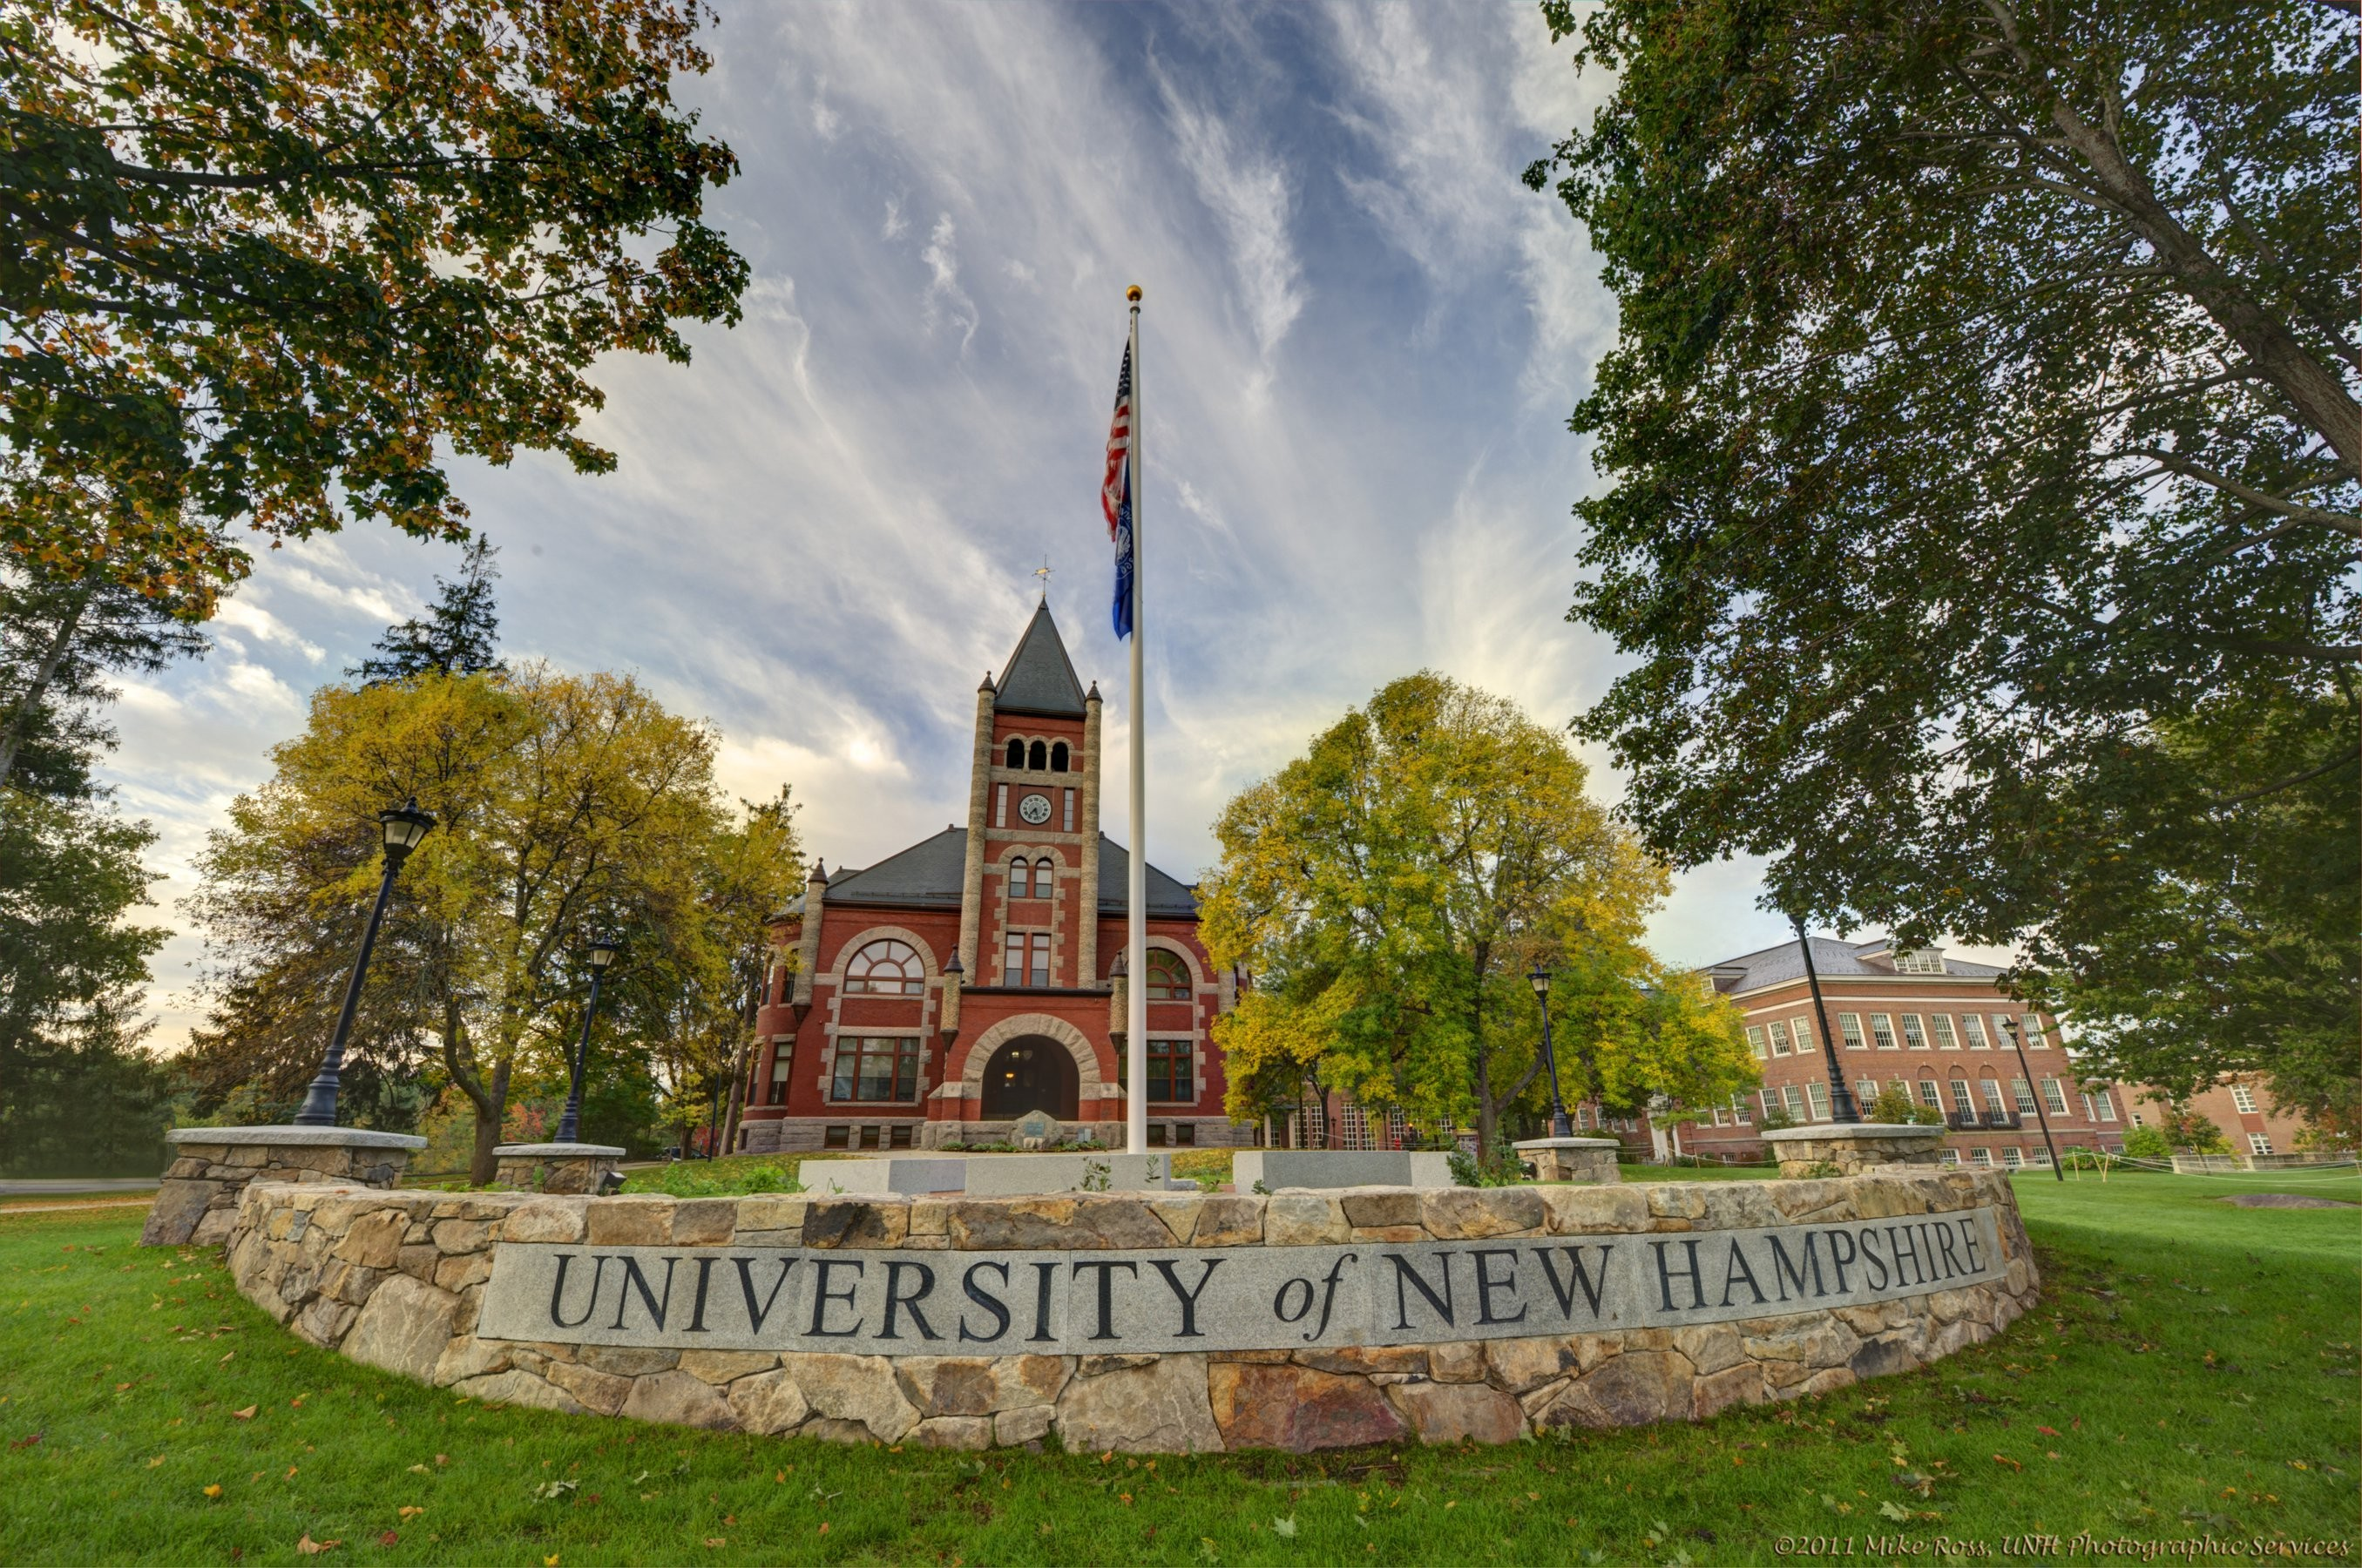 University of New Hampshire main campus sign